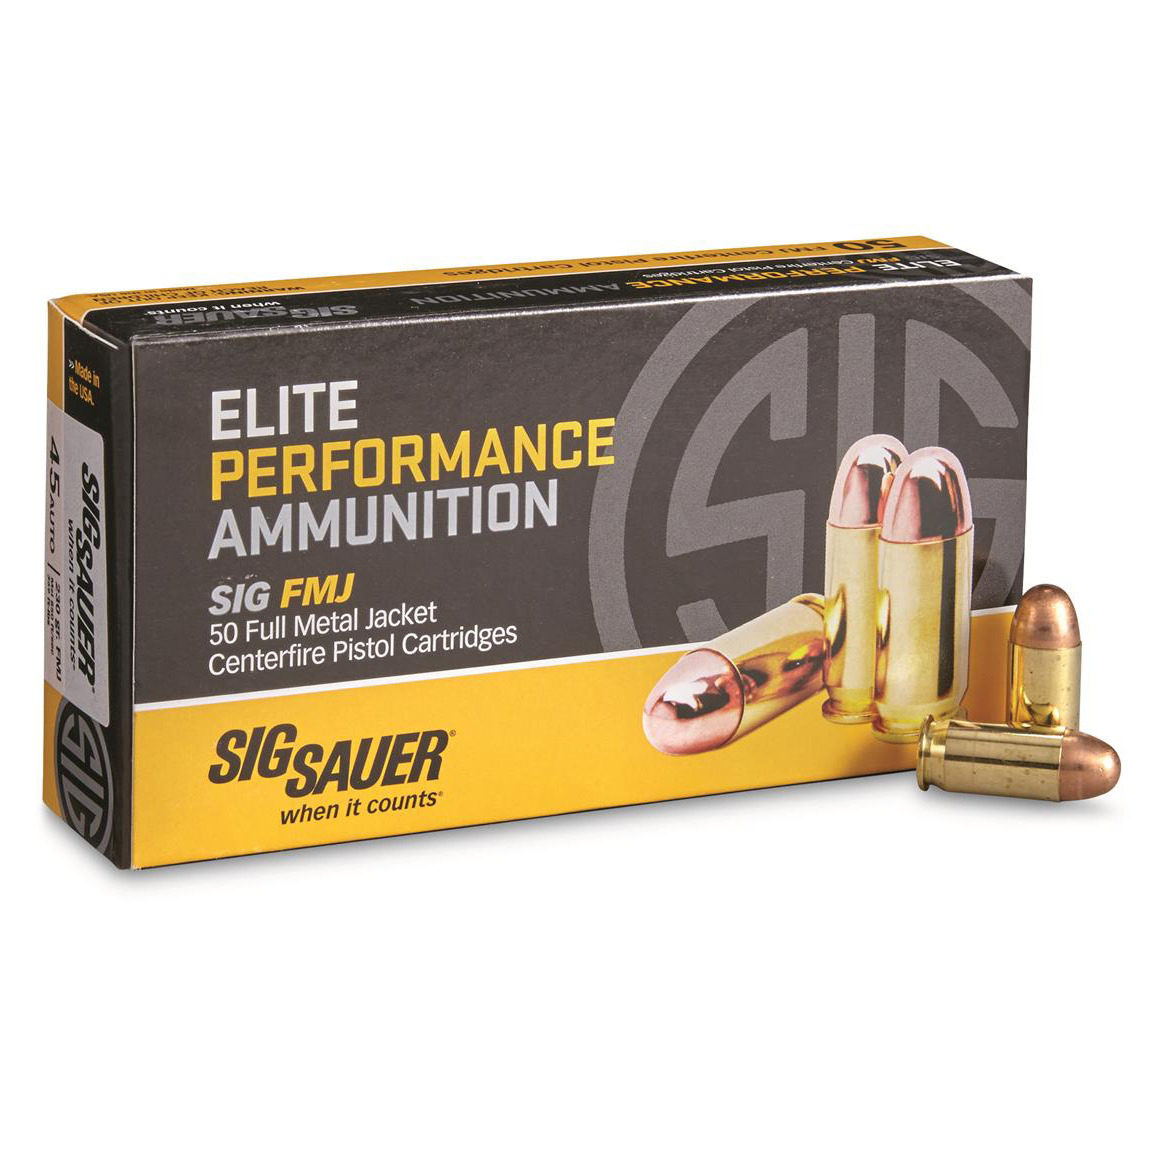 SIG Sauer Elite Performance Ammunition, .45 ACP, 230-gr, FMJ